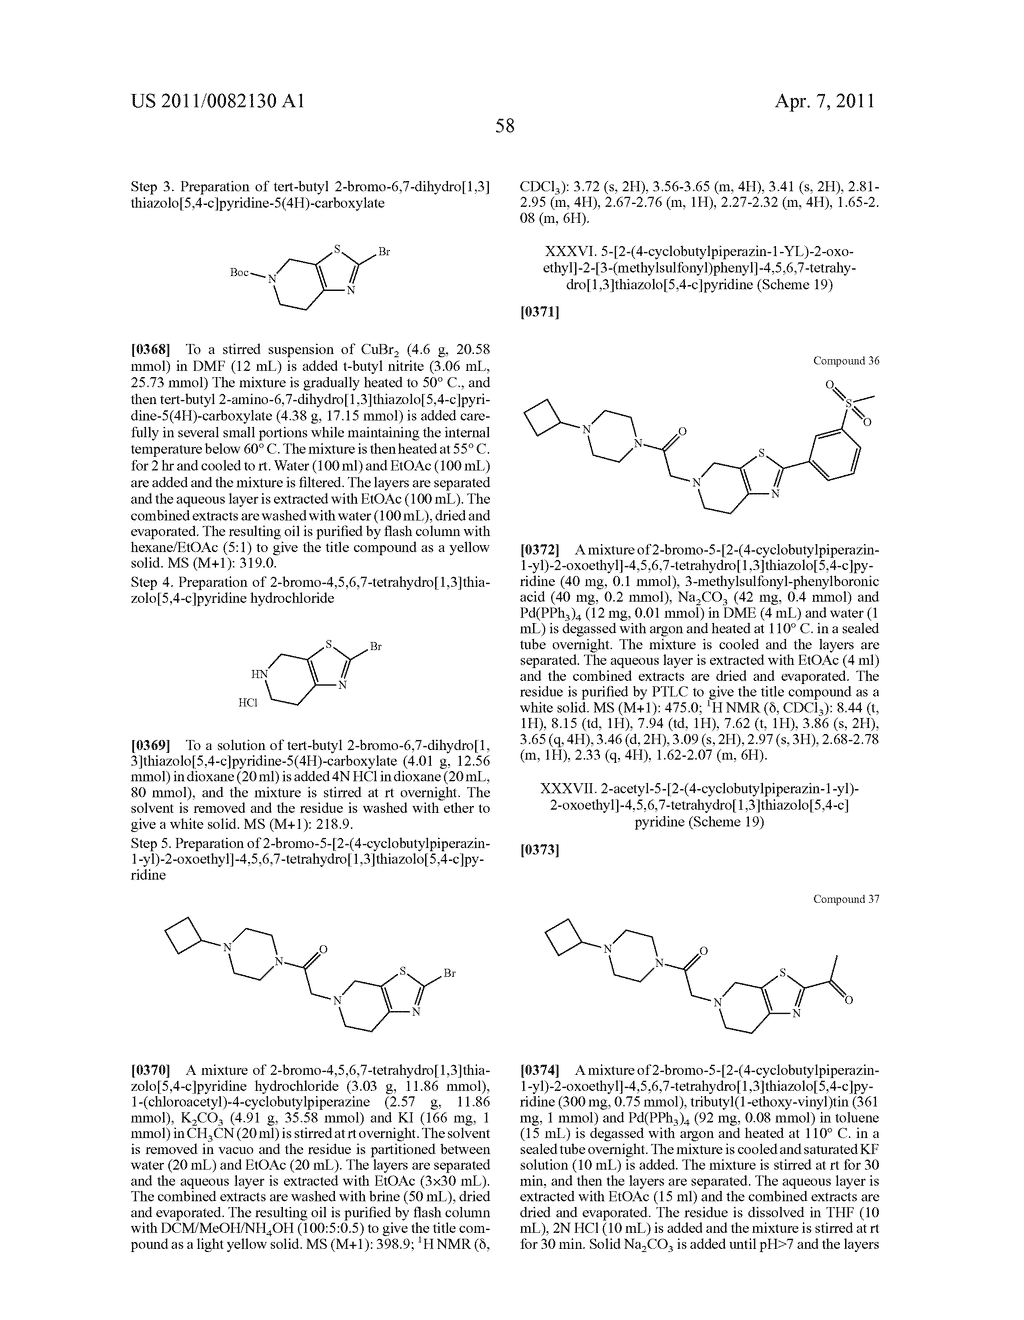 PIPERAZINYL OXOALKYL TETRAHYDROISOQUINOLINES AND RELATED ANALOGUES - diagram, schematic, and image 59